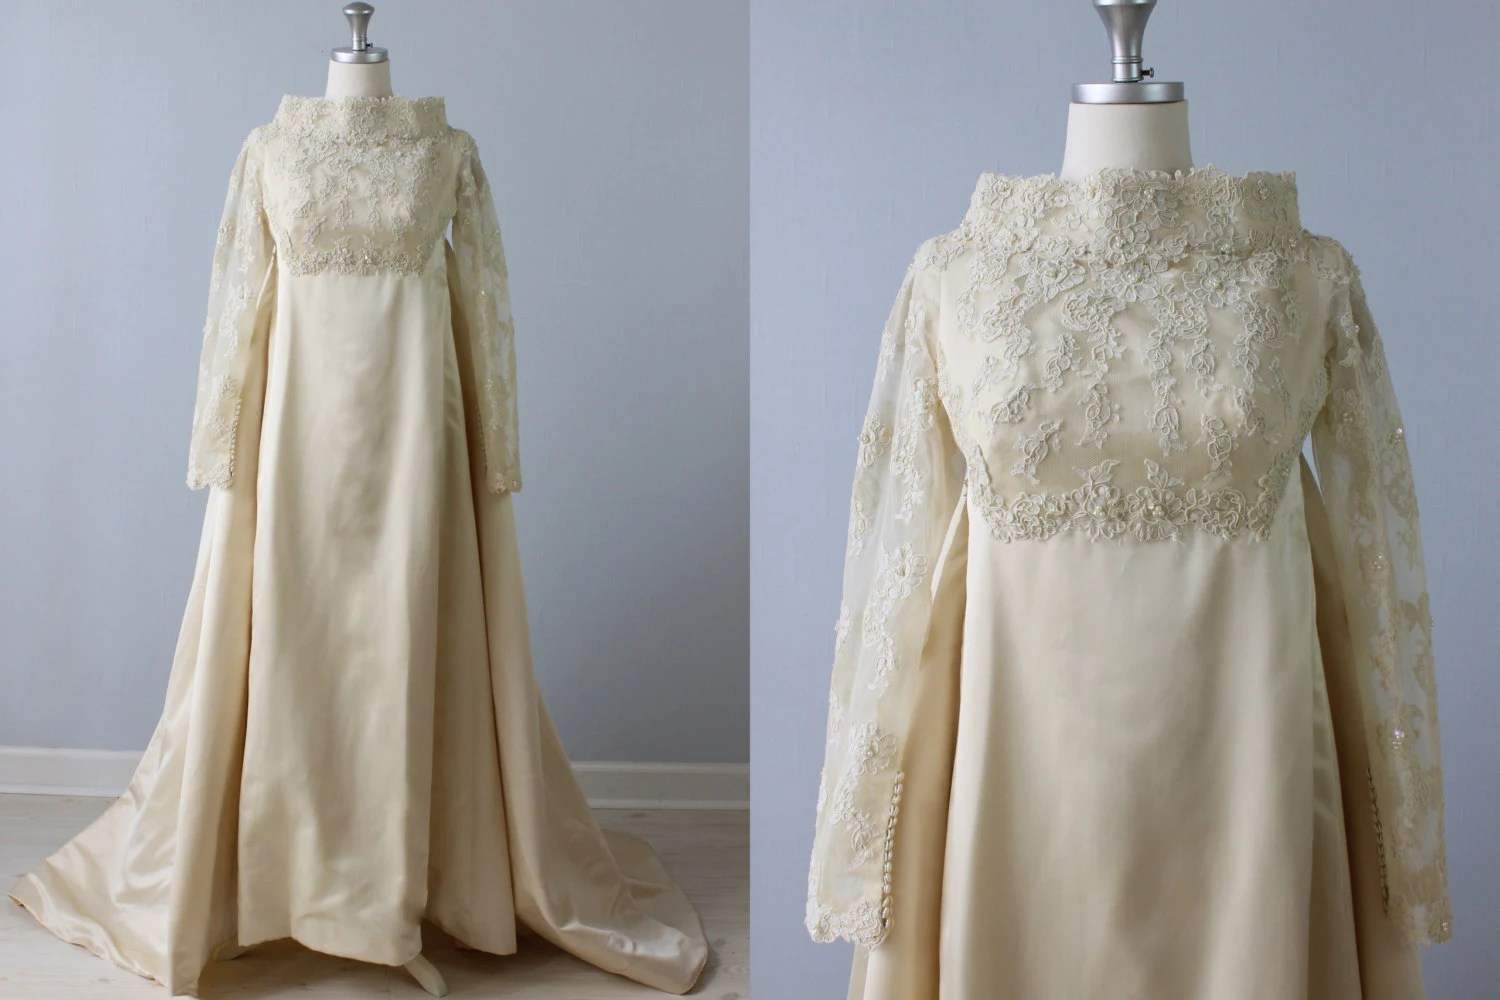 SALE Vintage 1960s Wedding Dress / Watteau Train / Lace